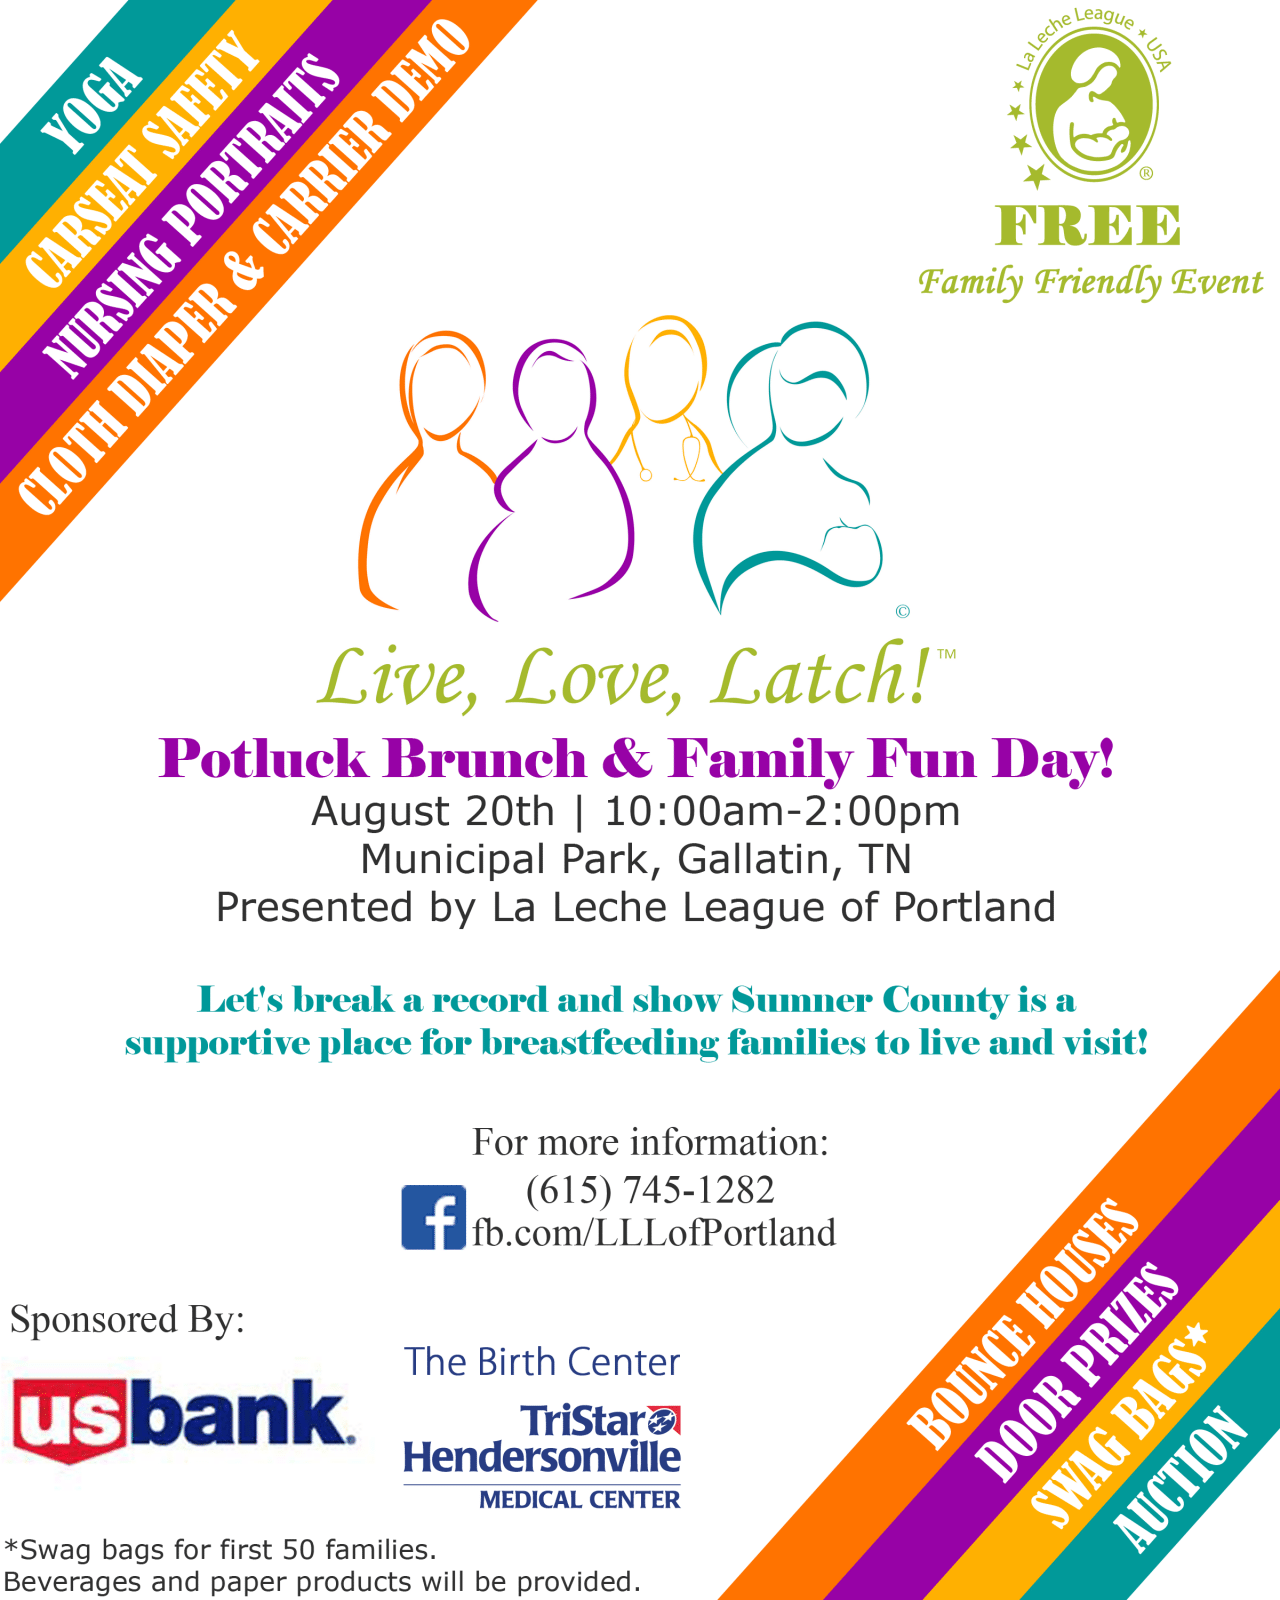 Tennessee sumner county portland - Potluck Brunch Family Fun Day Join Us For Fun Games And Community Building As We Celebrate National Breastfeeding Month Invite Friends And Family